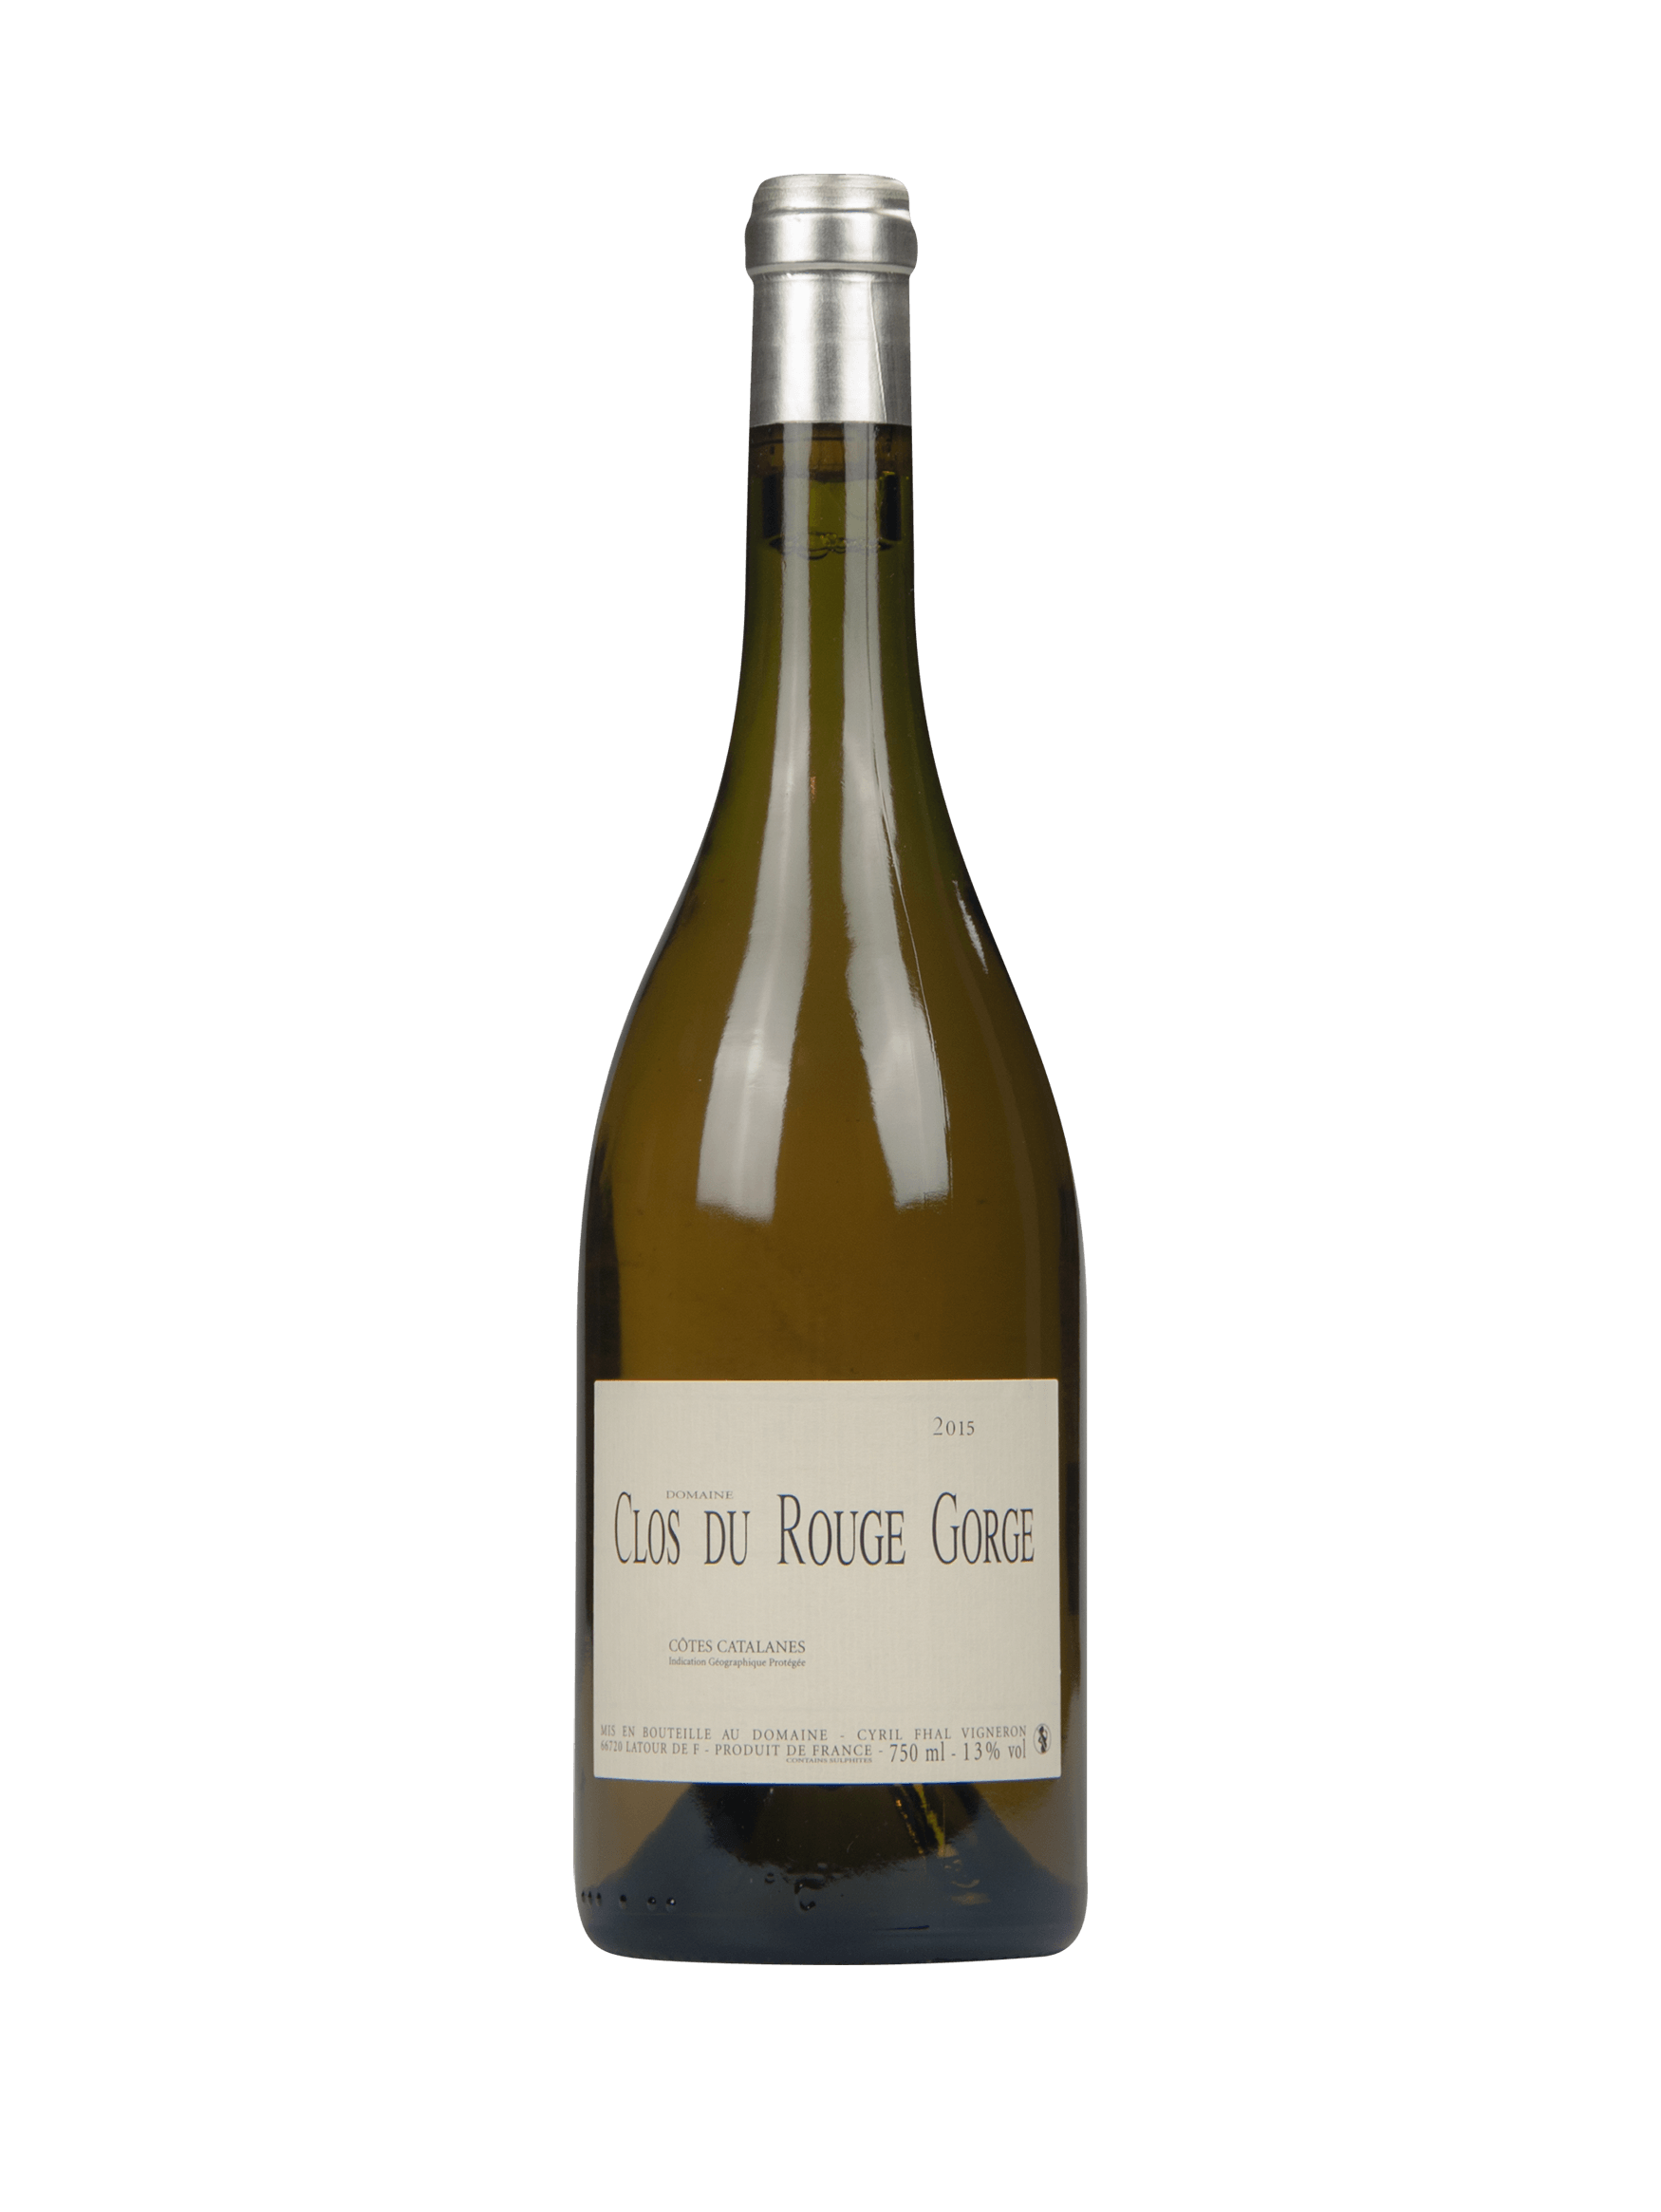 clos du gorge blanc 2014 vin blanc. Black Bedroom Furniture Sets. Home Design Ideas